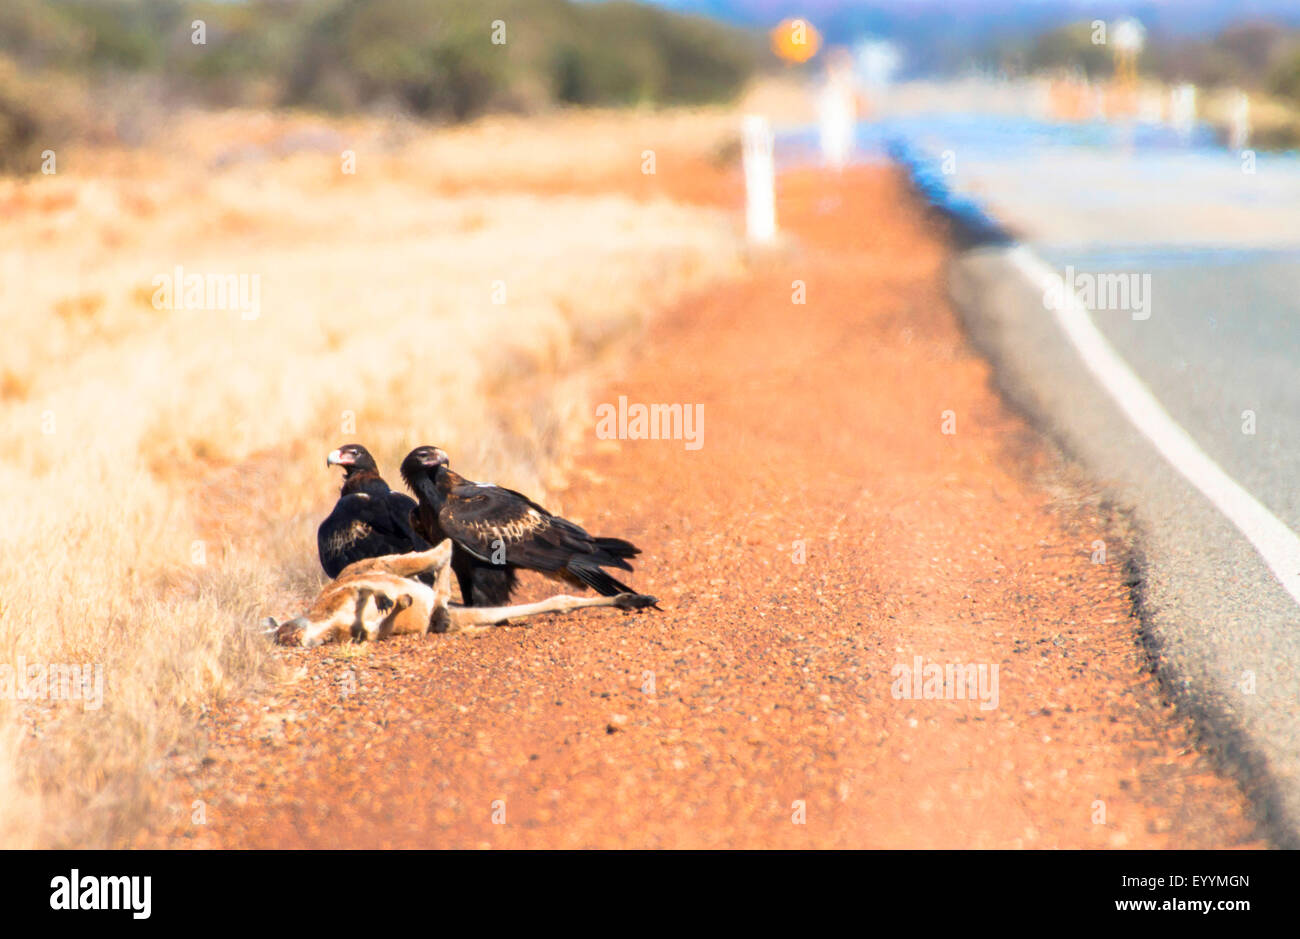 wedge-tailed eagle (Aquila audax), wedge-tailed eagles at knocked down kangaroo, Australia, Western Australia, Great Stock Photo